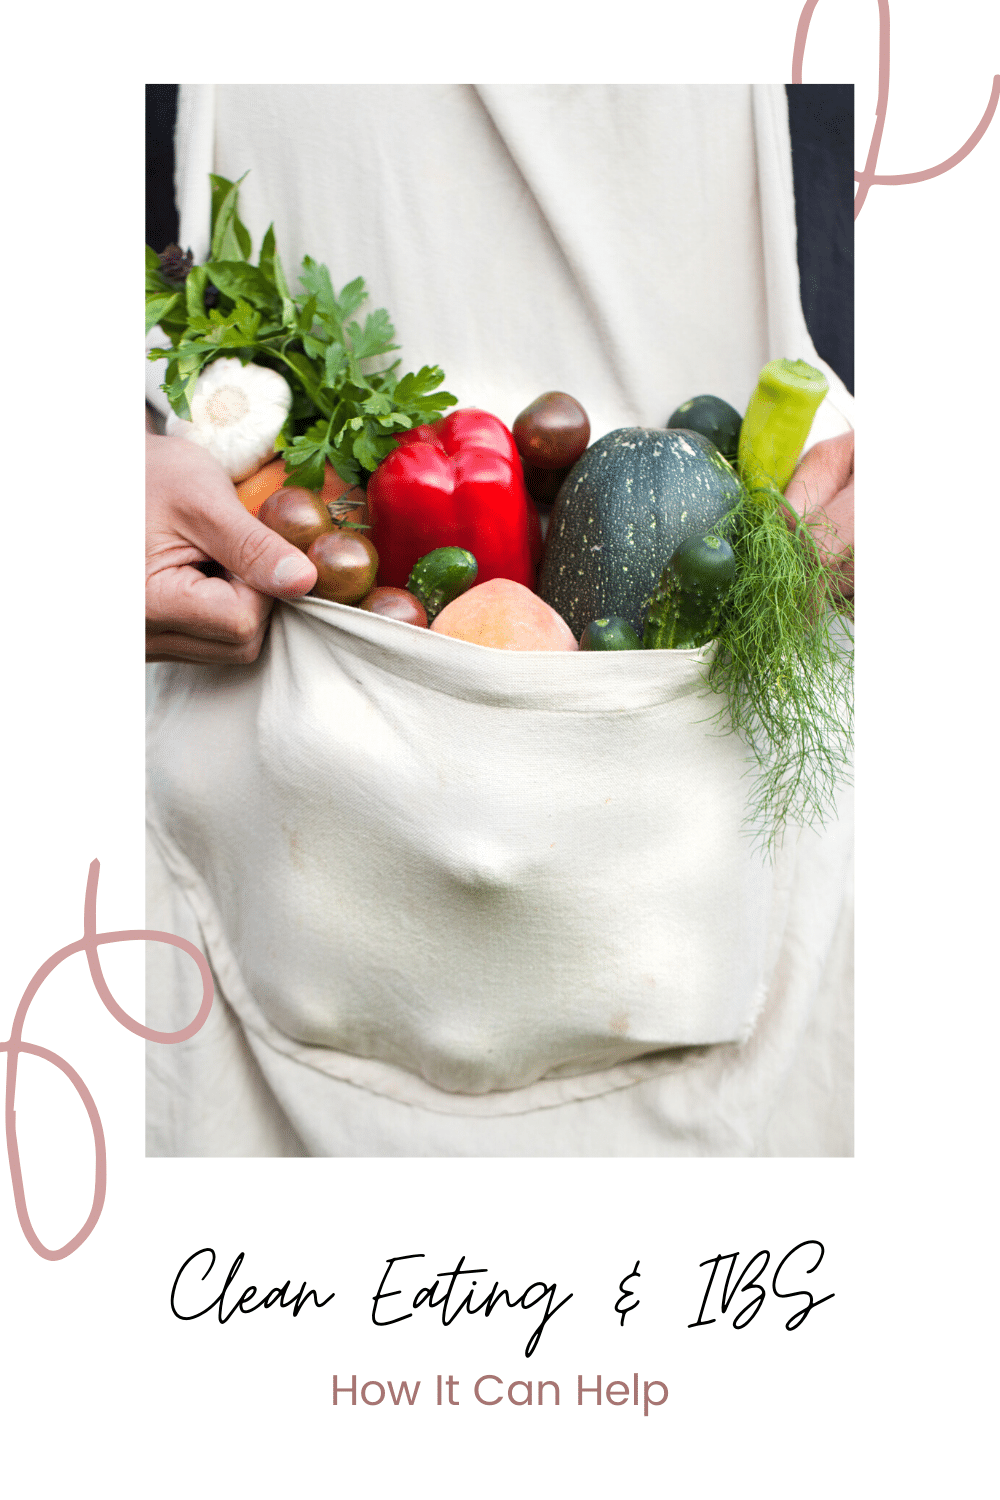 a picture of produce in a white apron and words that say clean eating and IBS